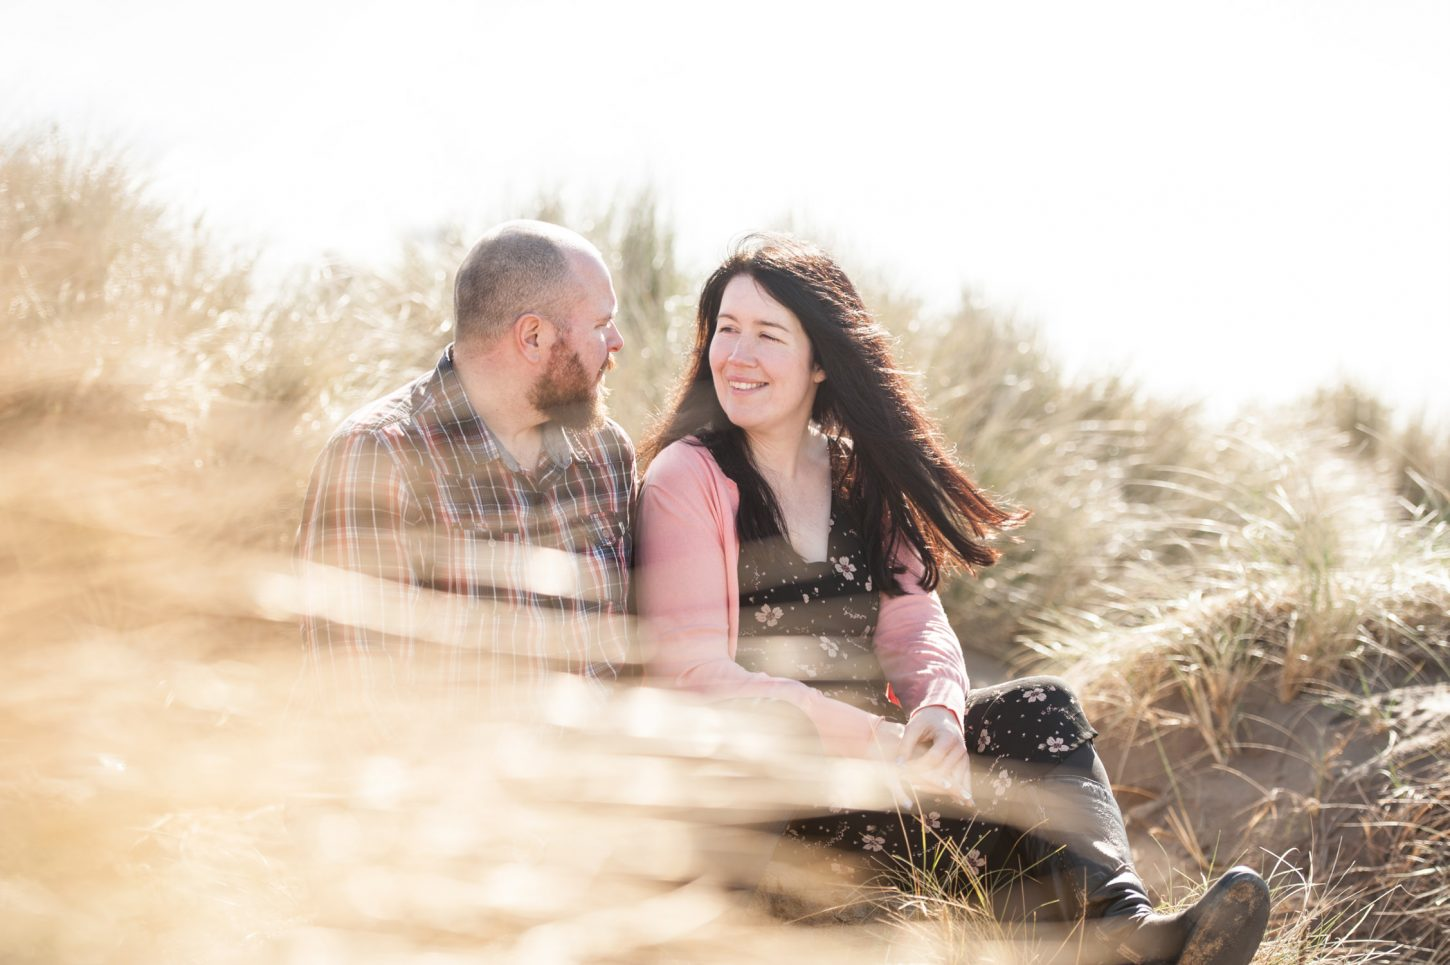 Cornwall wedding photographer capturing couple on Bude beach for a pre-wedding shoot